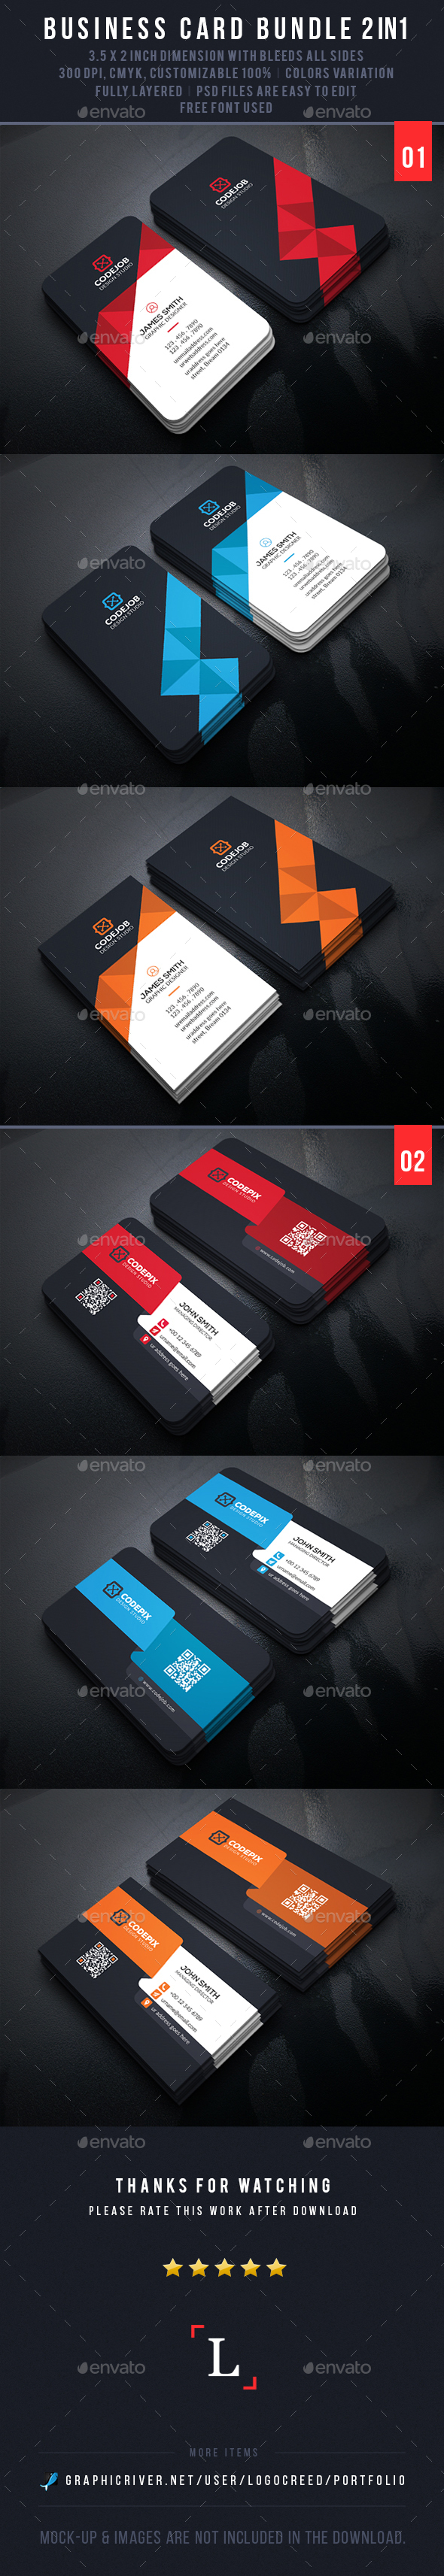 Soft Business Card Bundle - Business Cards Print Templates